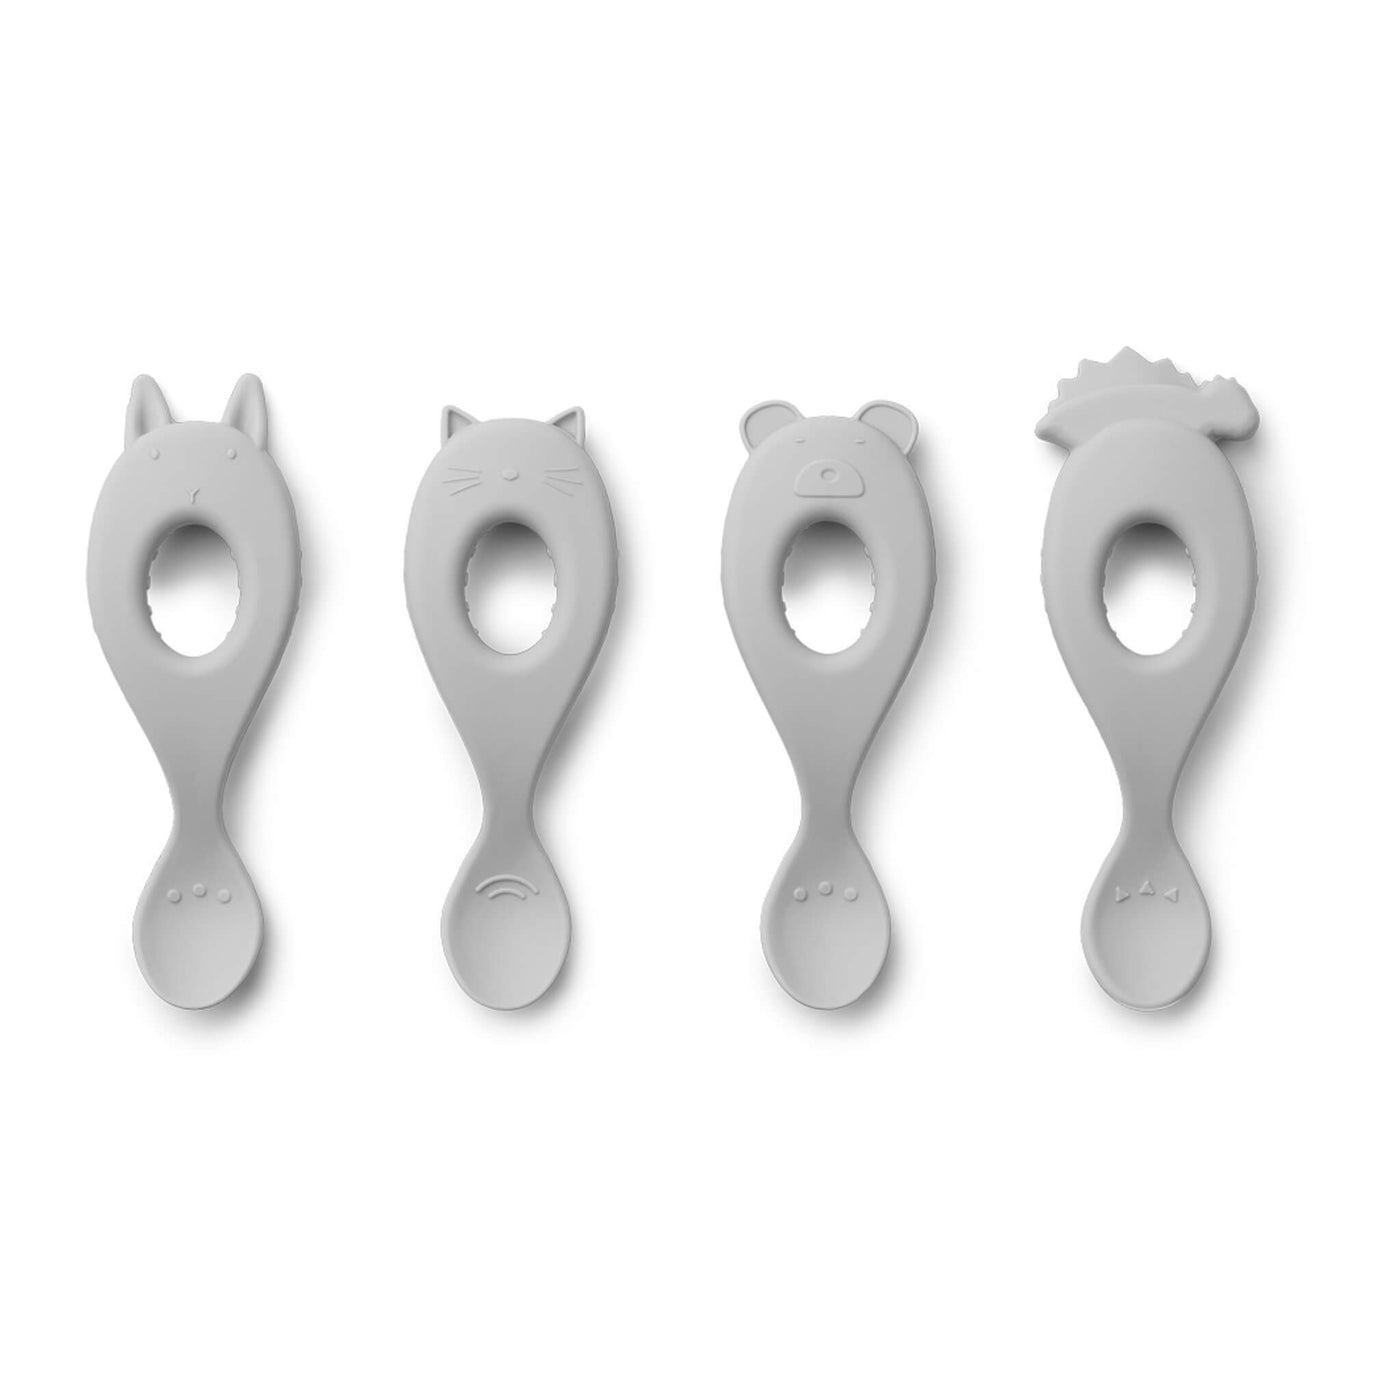 Silicone Spoons - Grey (Pack of 4)